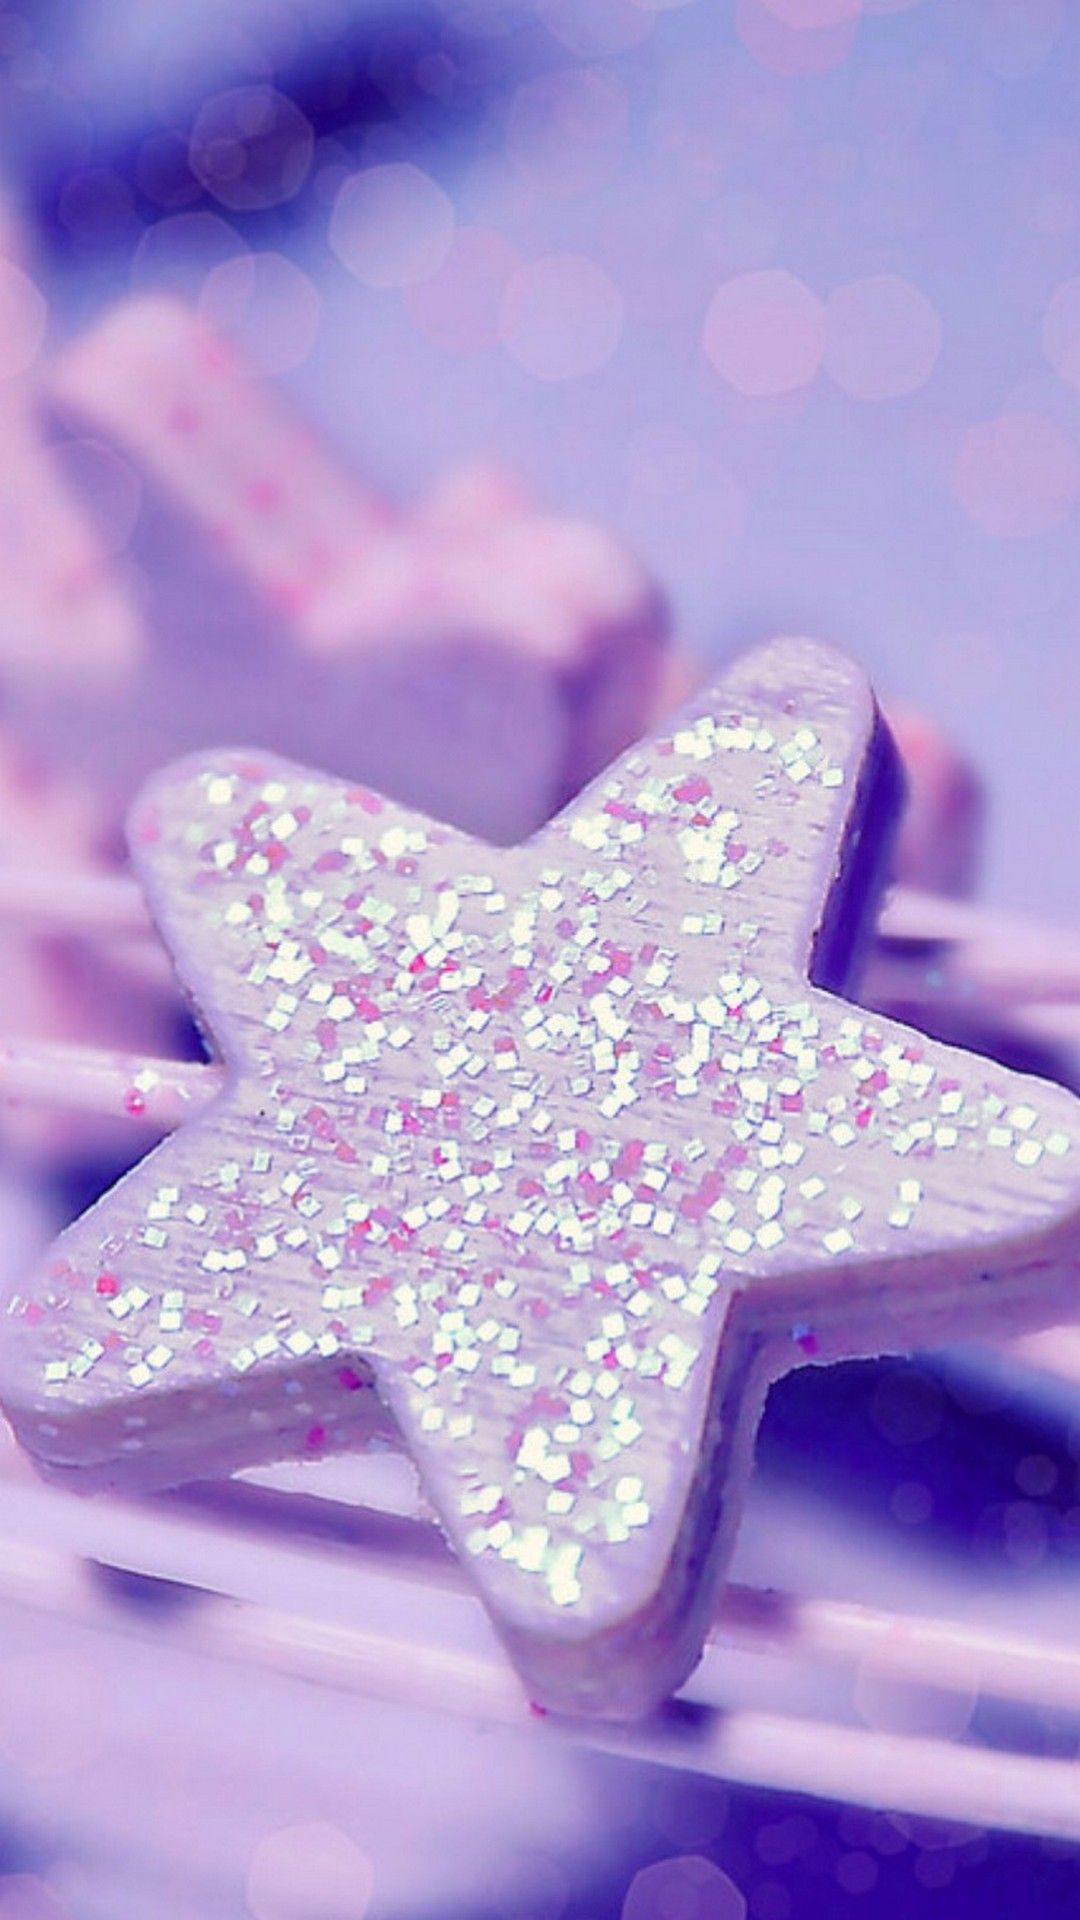 Cute star girly wallpaper android best hd wallpapers cute star girly wallpaper android best hd wallpapers voltagebd Gallery